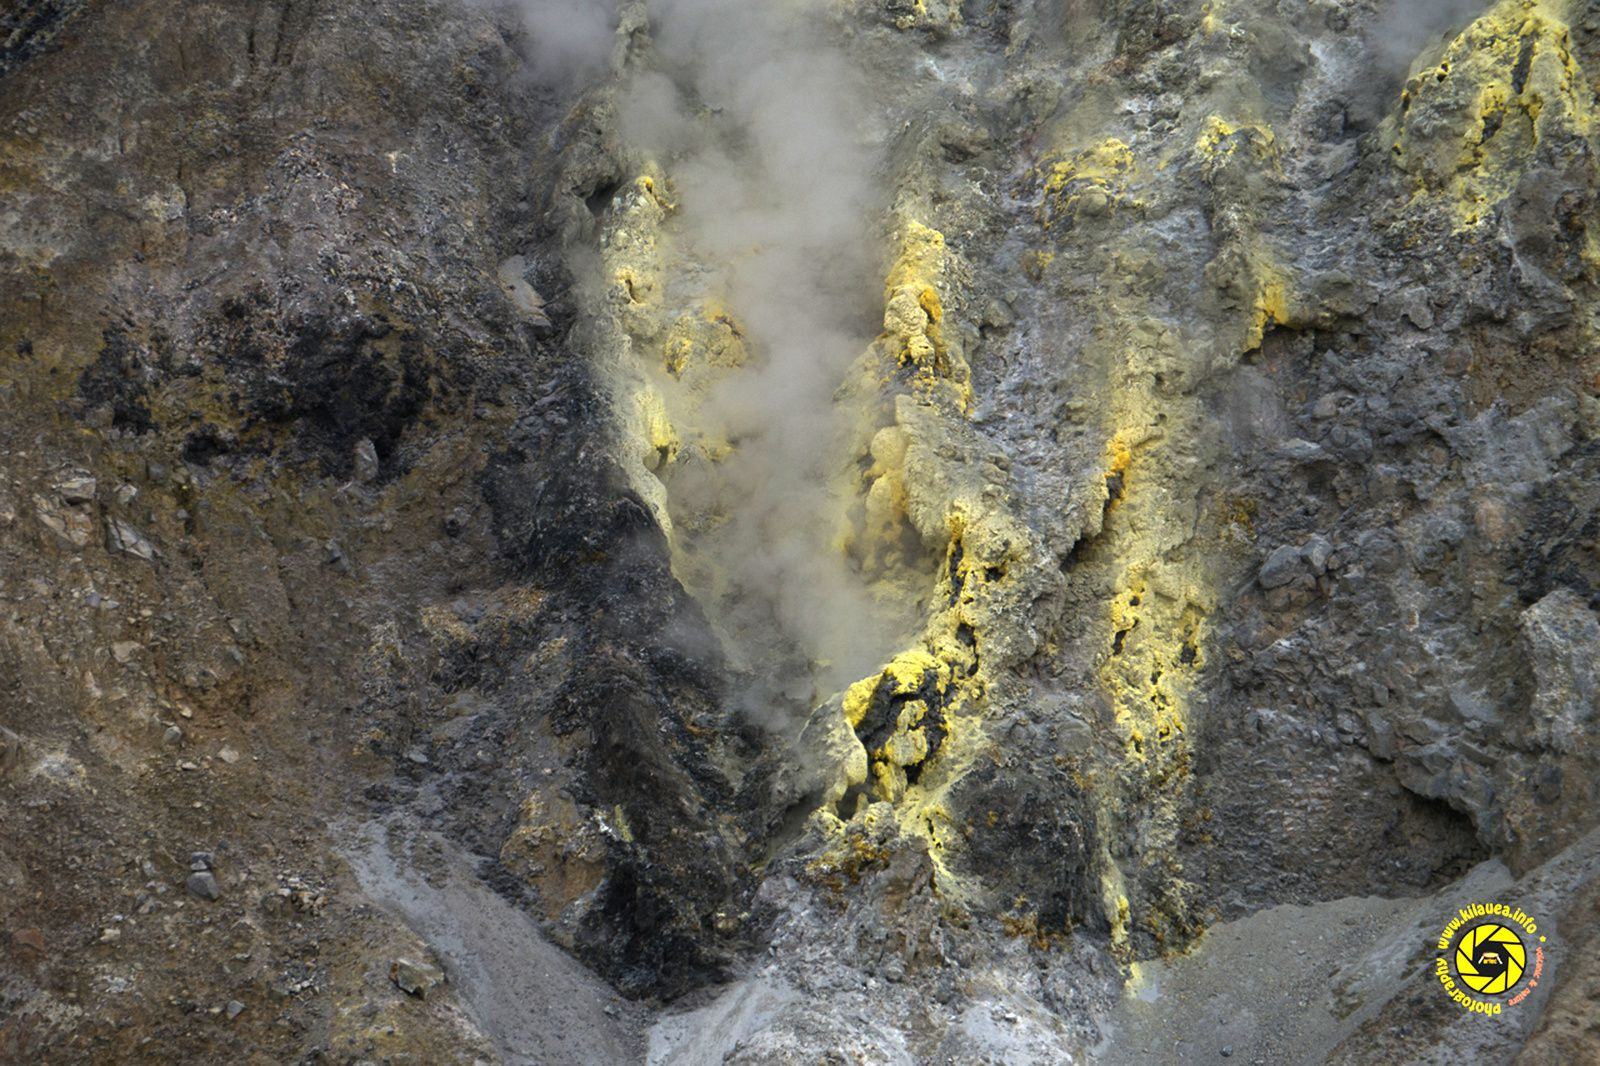 Papandayan - active fumaroles zone near the edges of the crater lake, close up - Photo © 2015 Jean-Michel Mestdagh